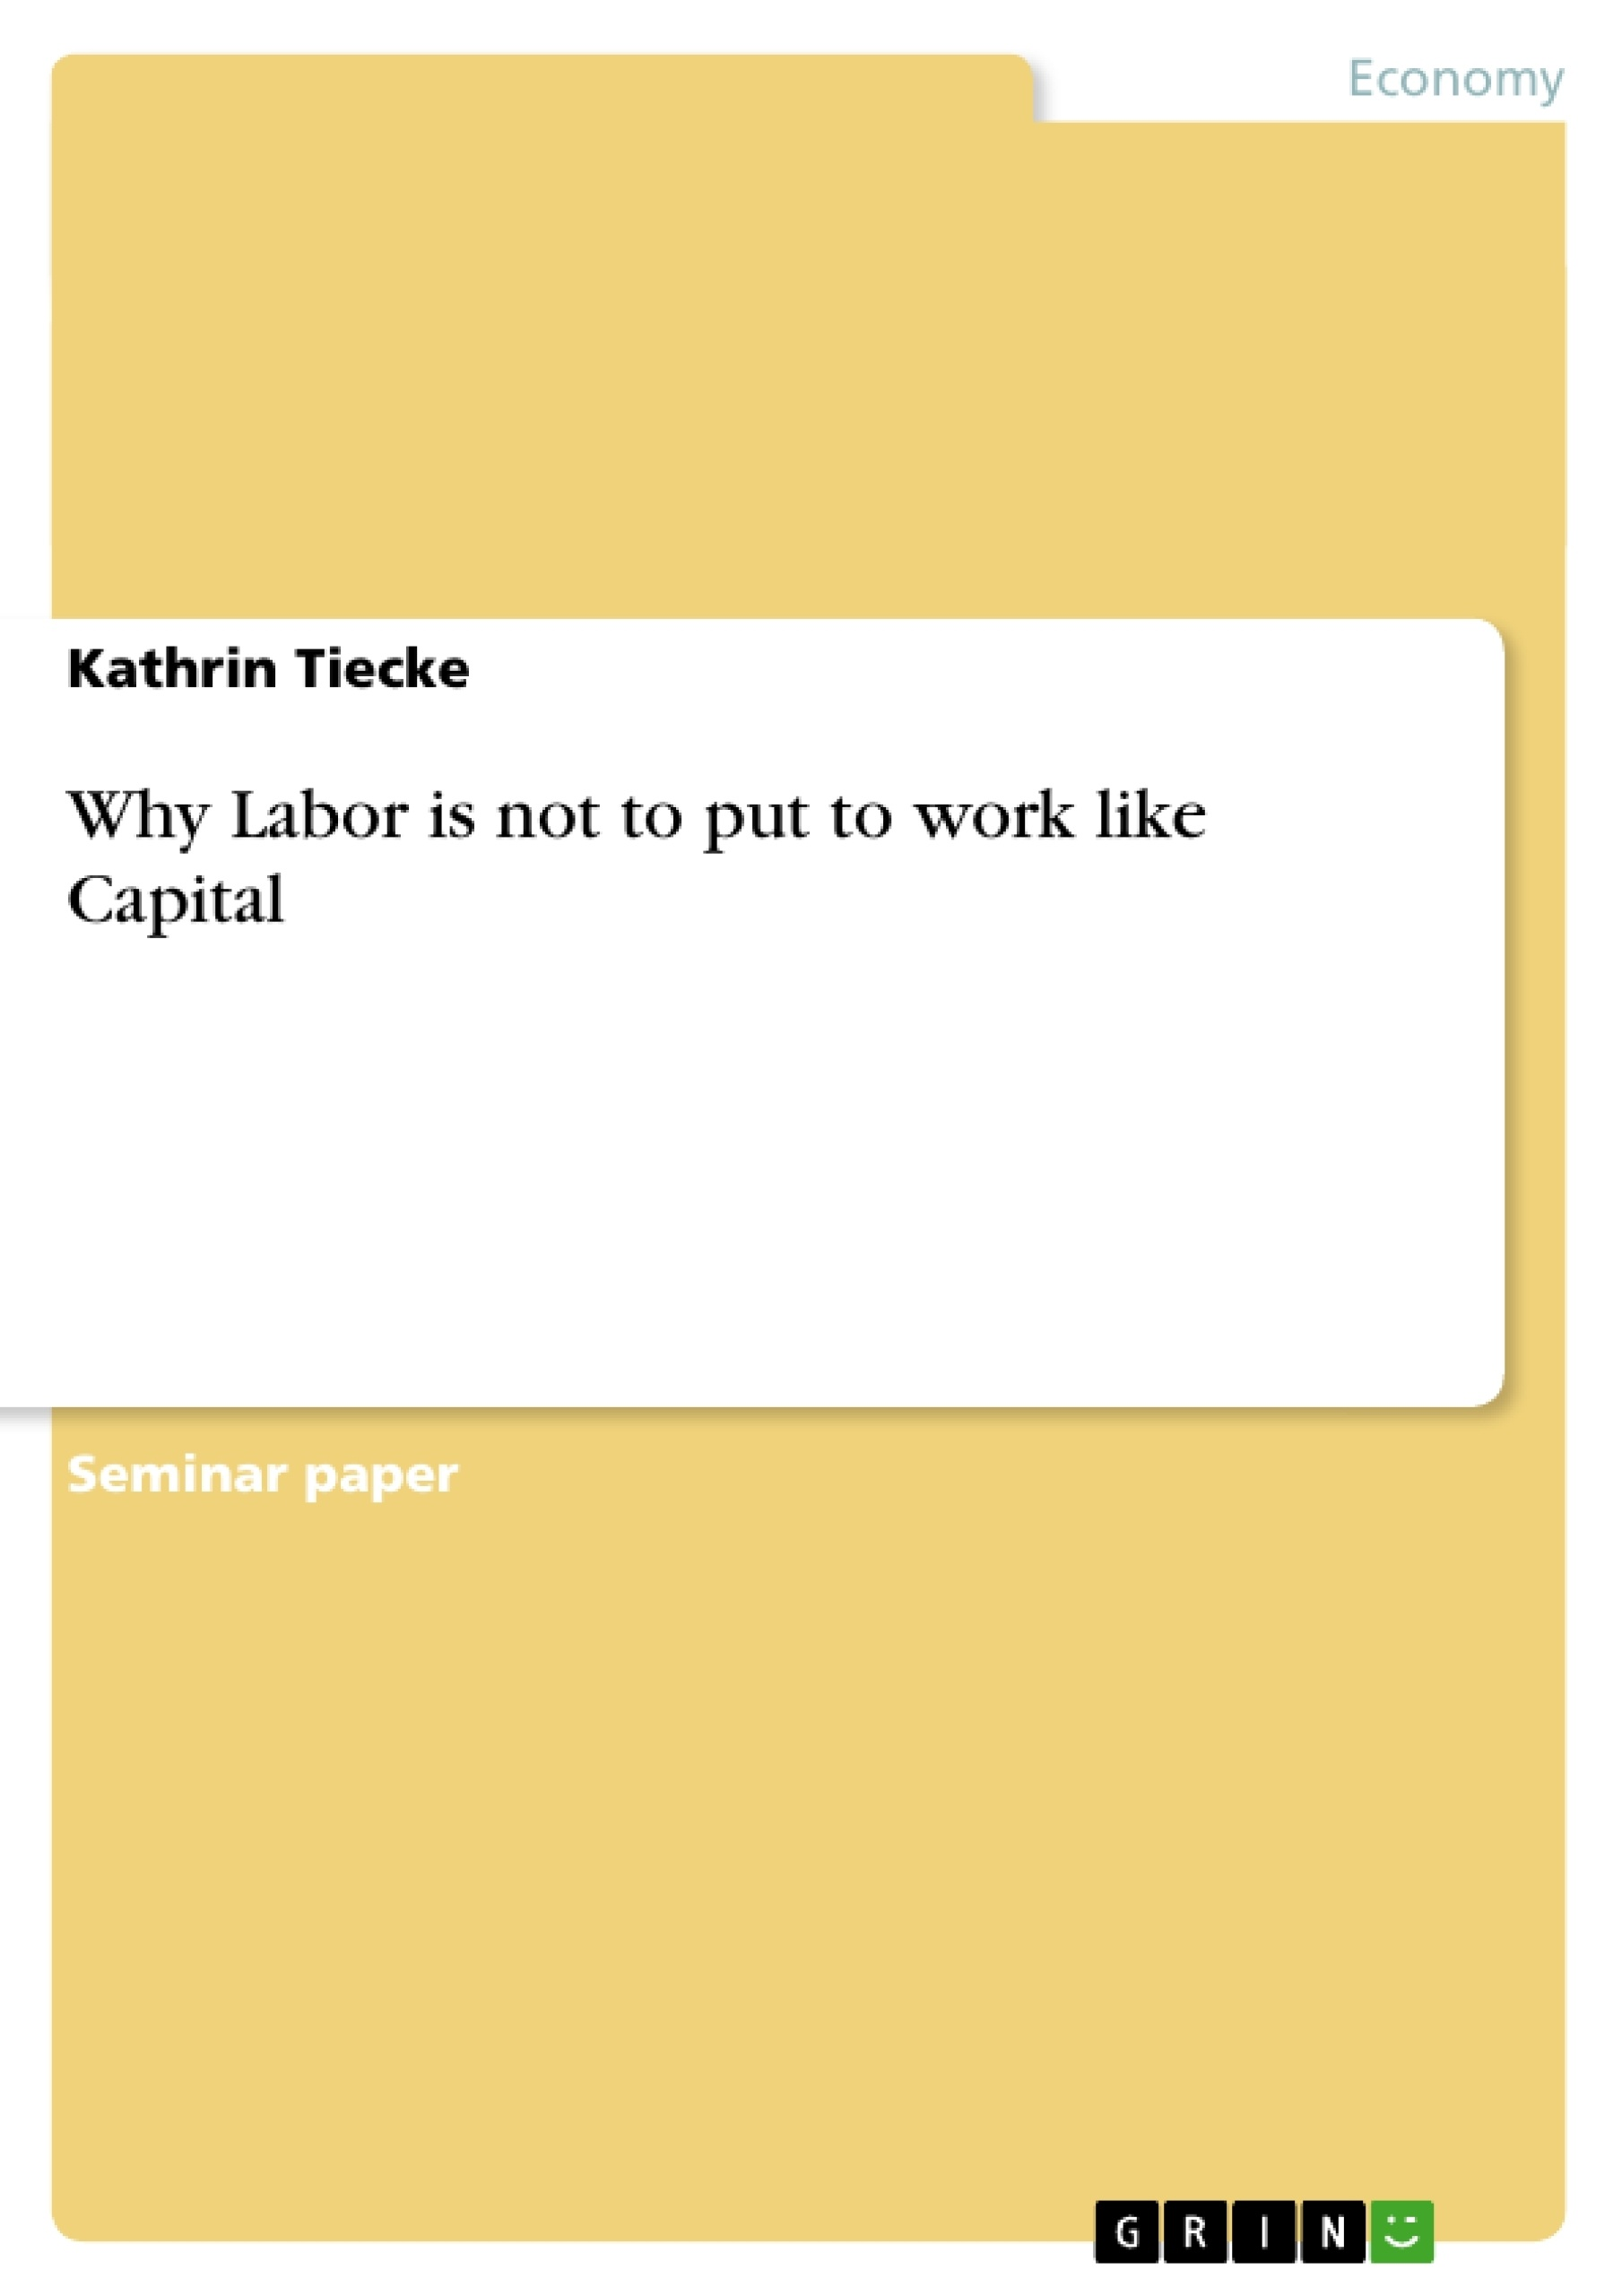 Title: Why Labor is not to put to work like Capital